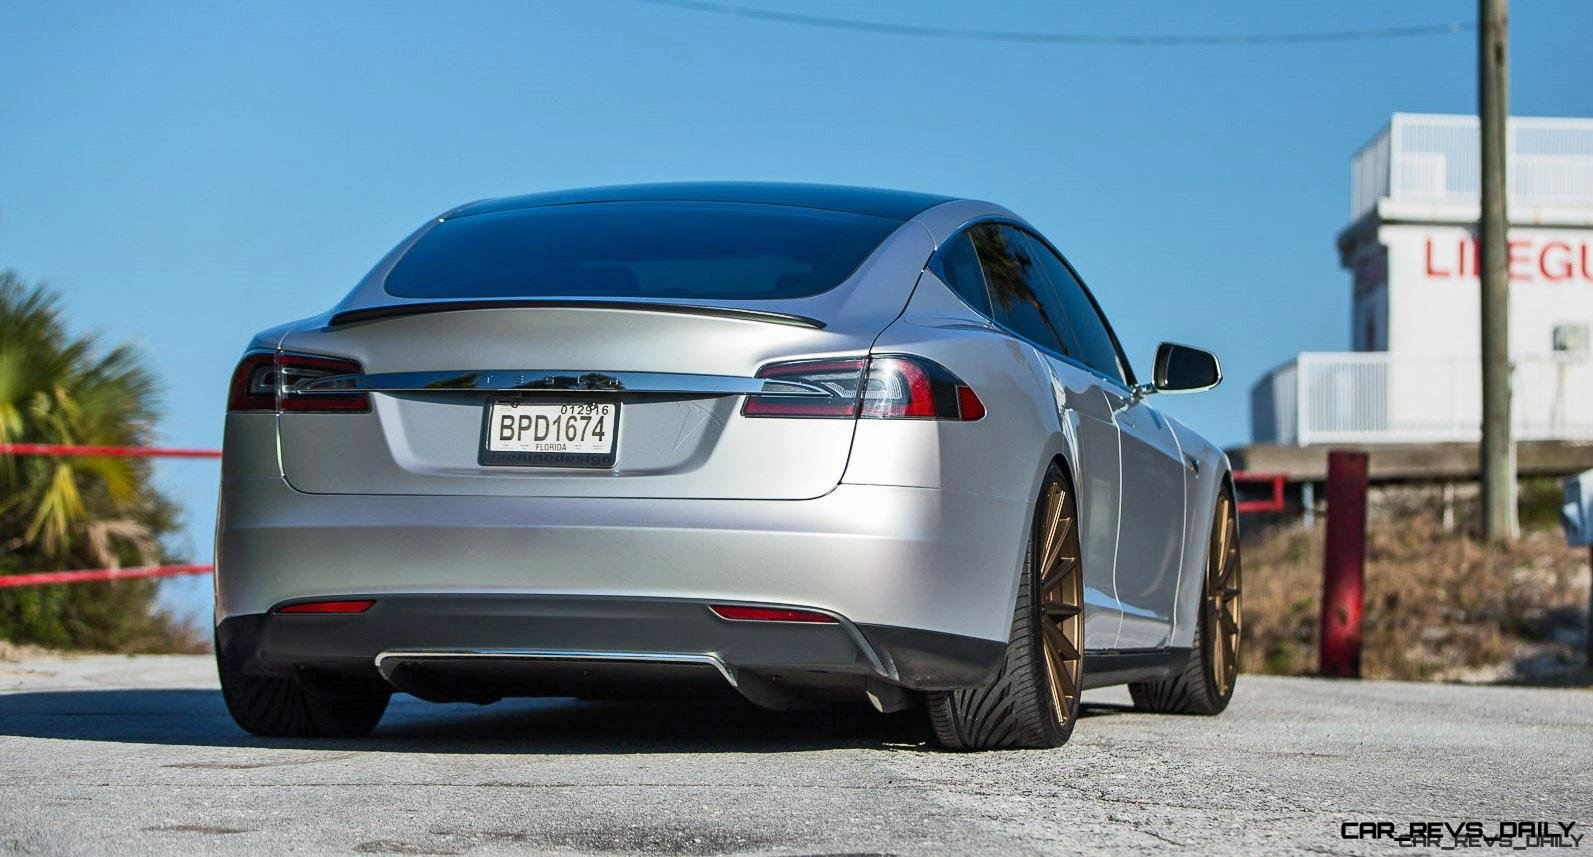 2013 Tesla Model S P85+ - Vossen VFS-2 Wheels -_25685987910_o